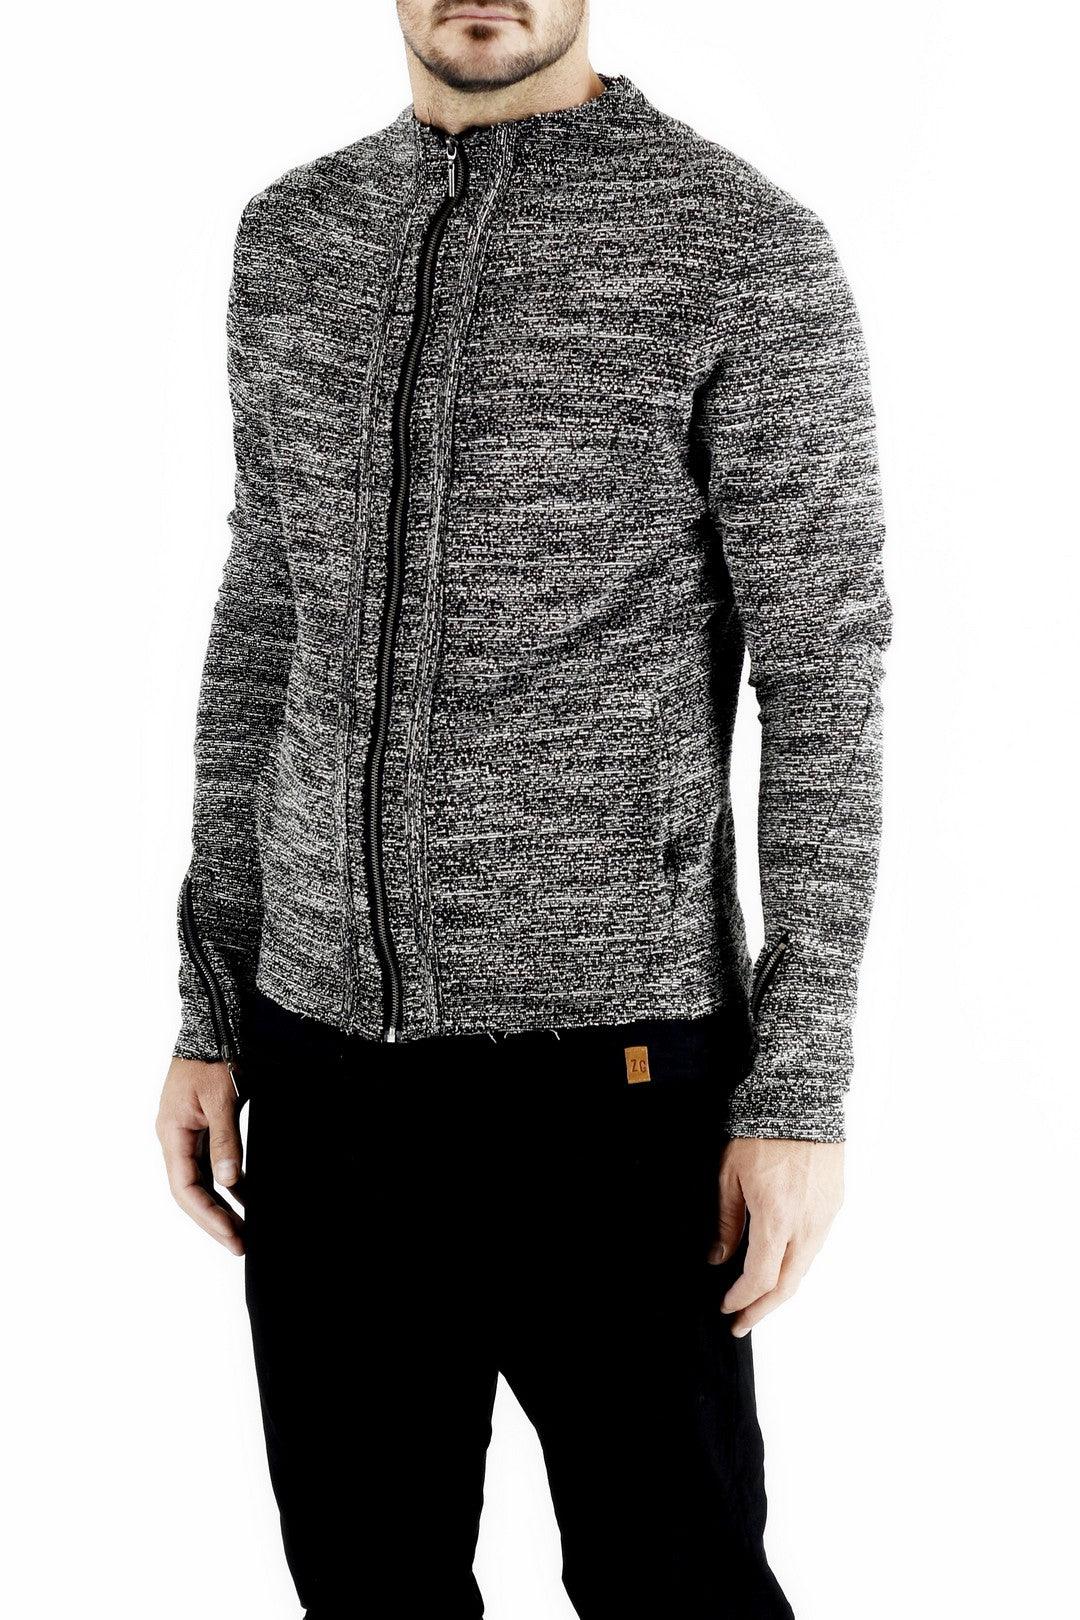 Mens Zip Jacket in Marl Boucle made by Zeitgeist side view